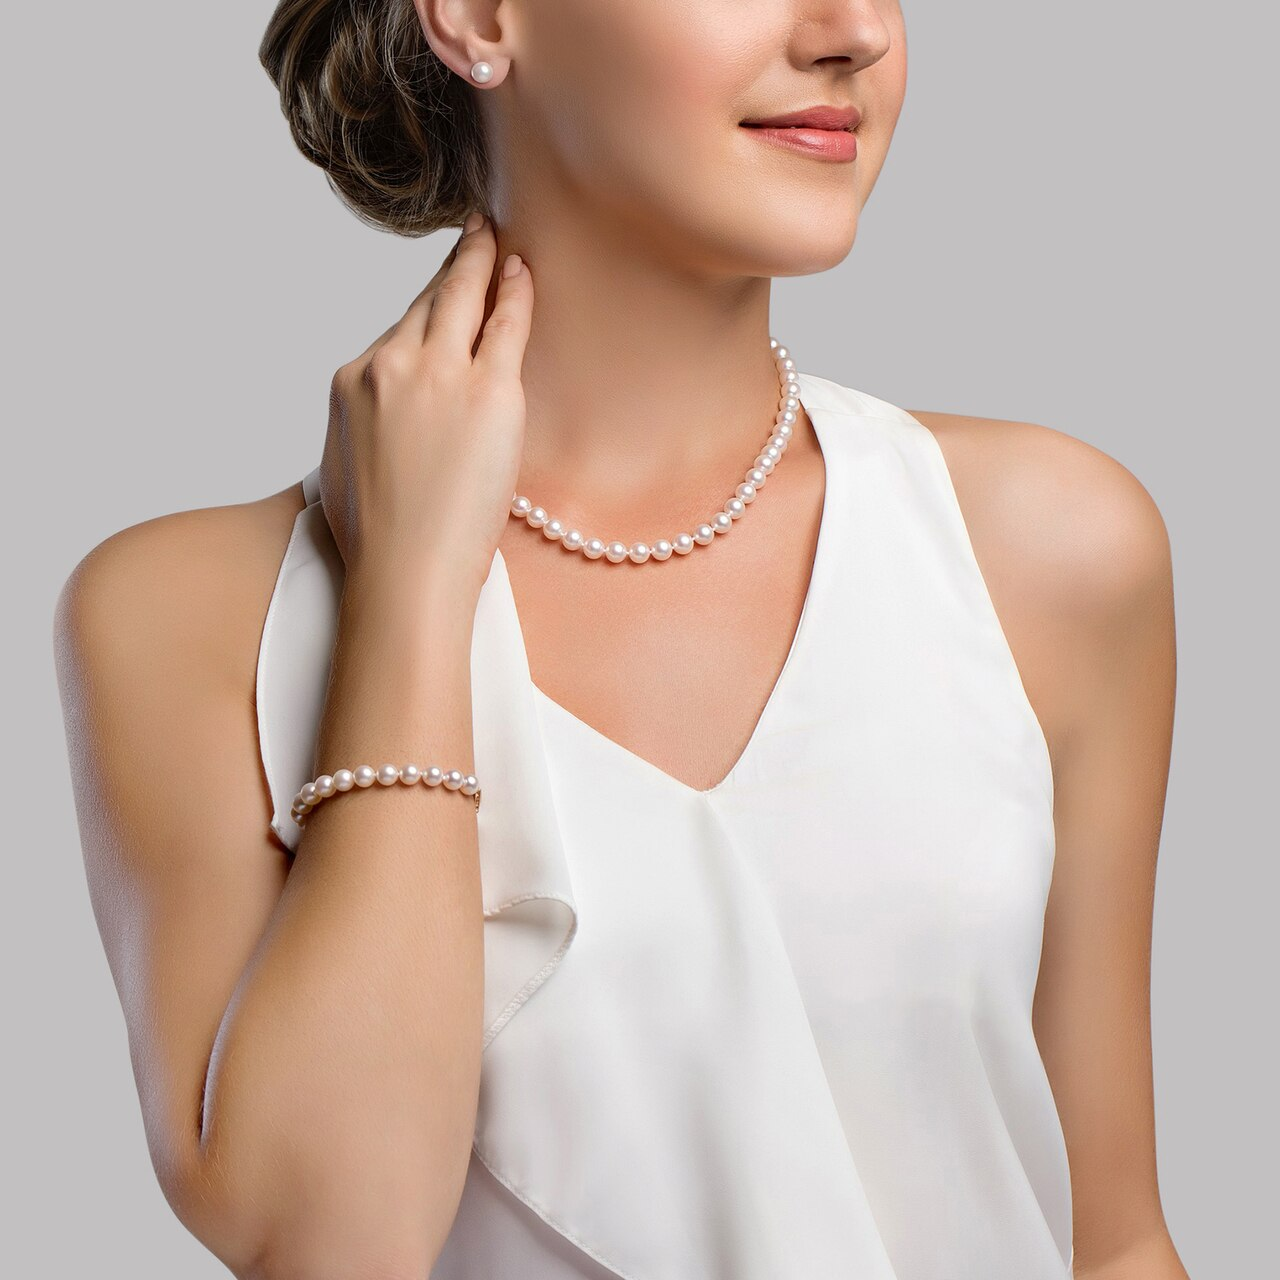 This elegant necklace, bracelet and earring set features 9.0-9.5mm Hanadama Akoya pearls